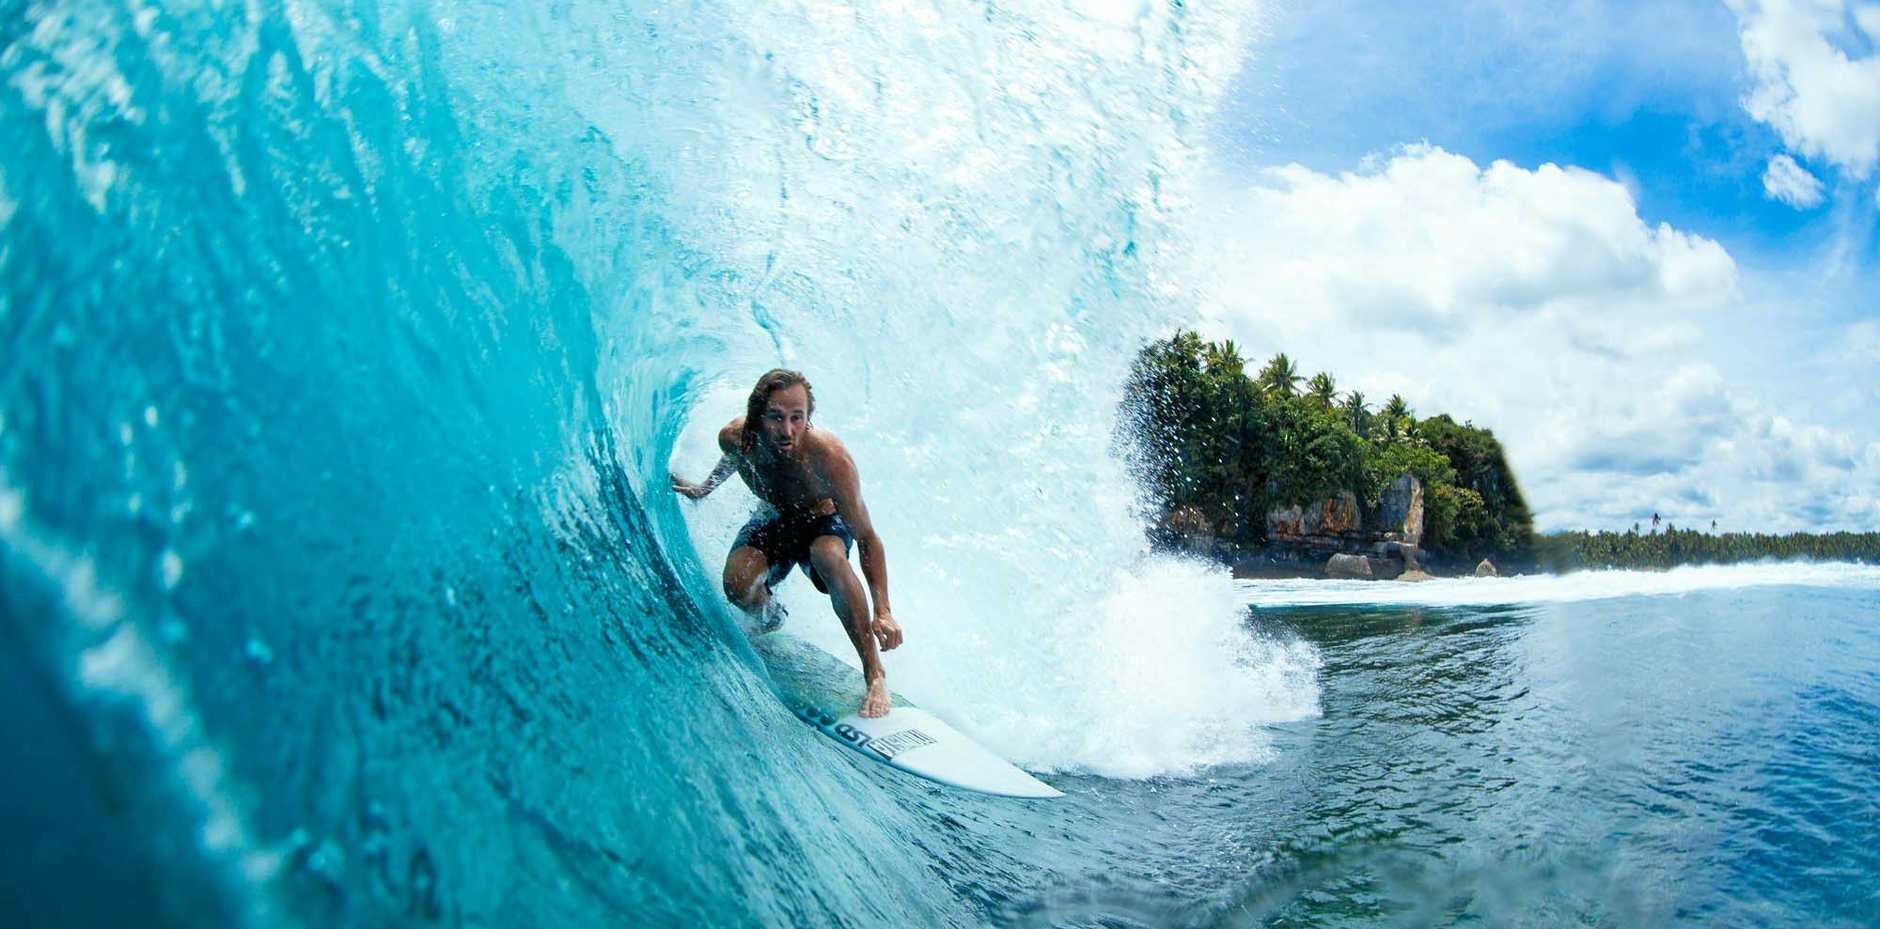 This new home grown film is set to make its mark at the Sunshine Coast Surf Film Festival.